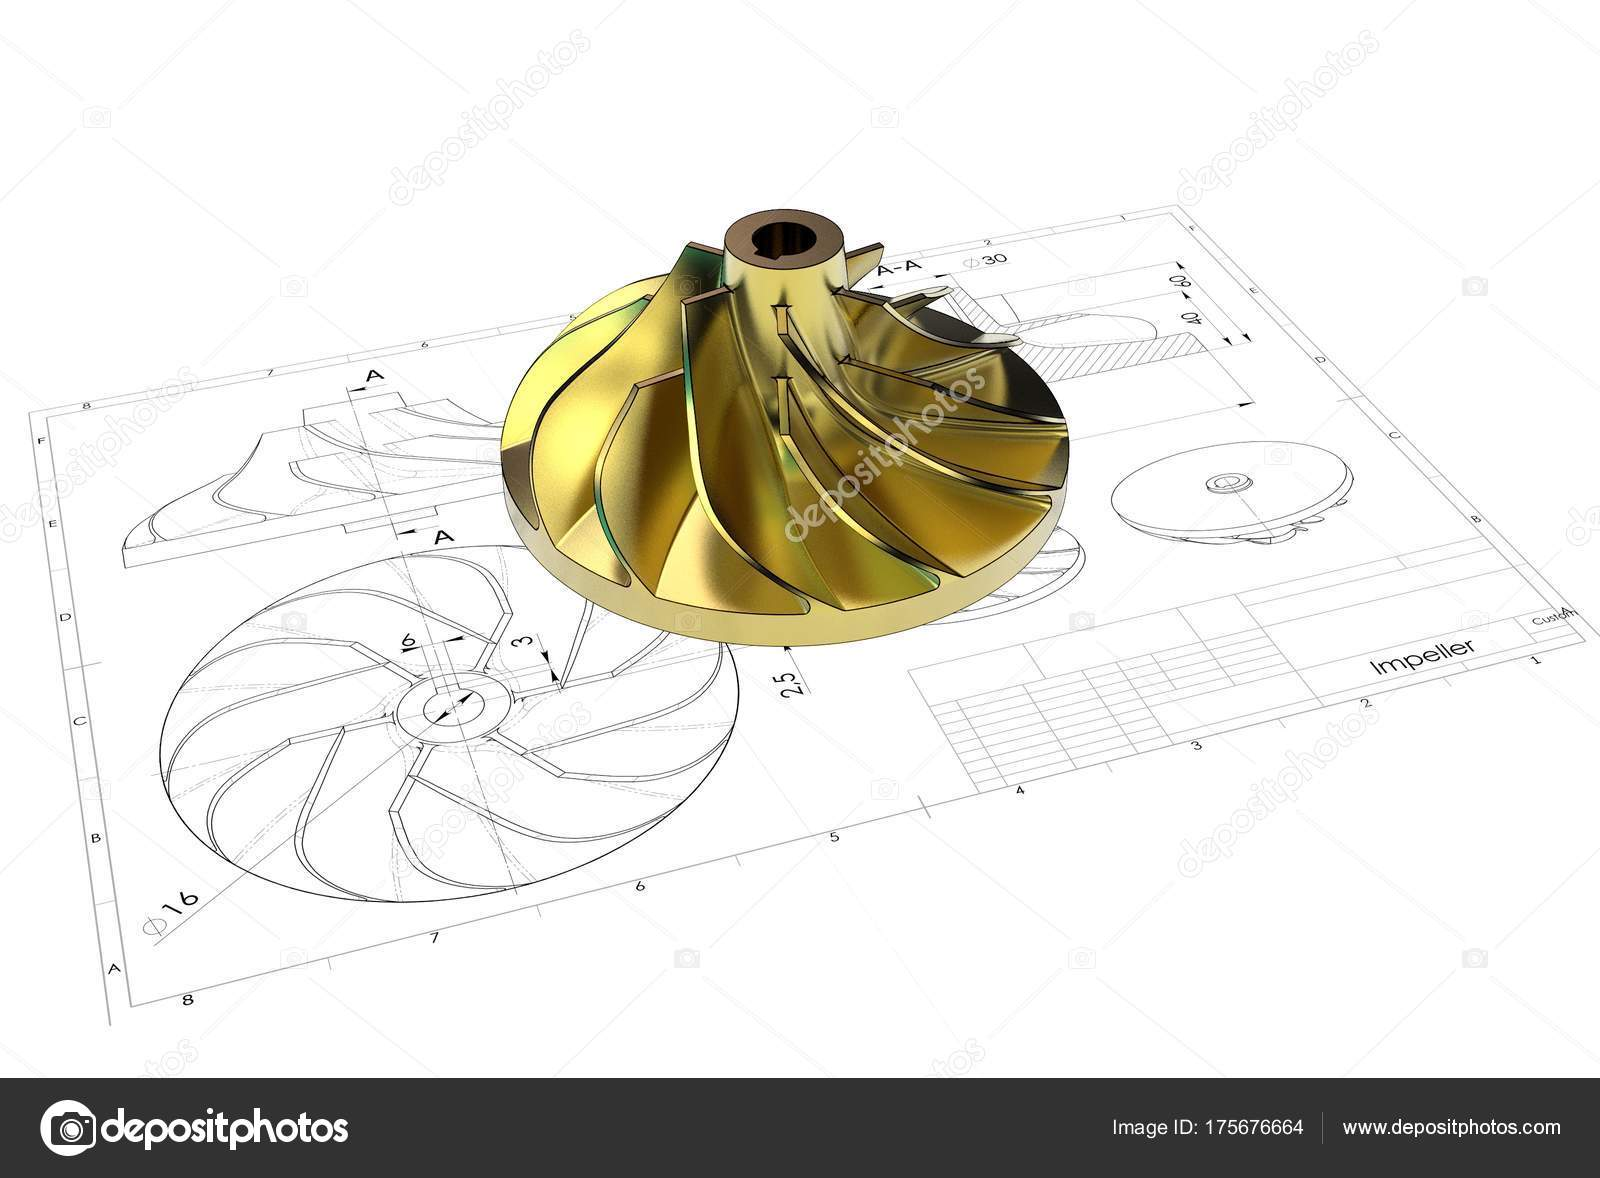 1600x1178 Illustration Turbo Impeller Engineering Drawing Stock Photo